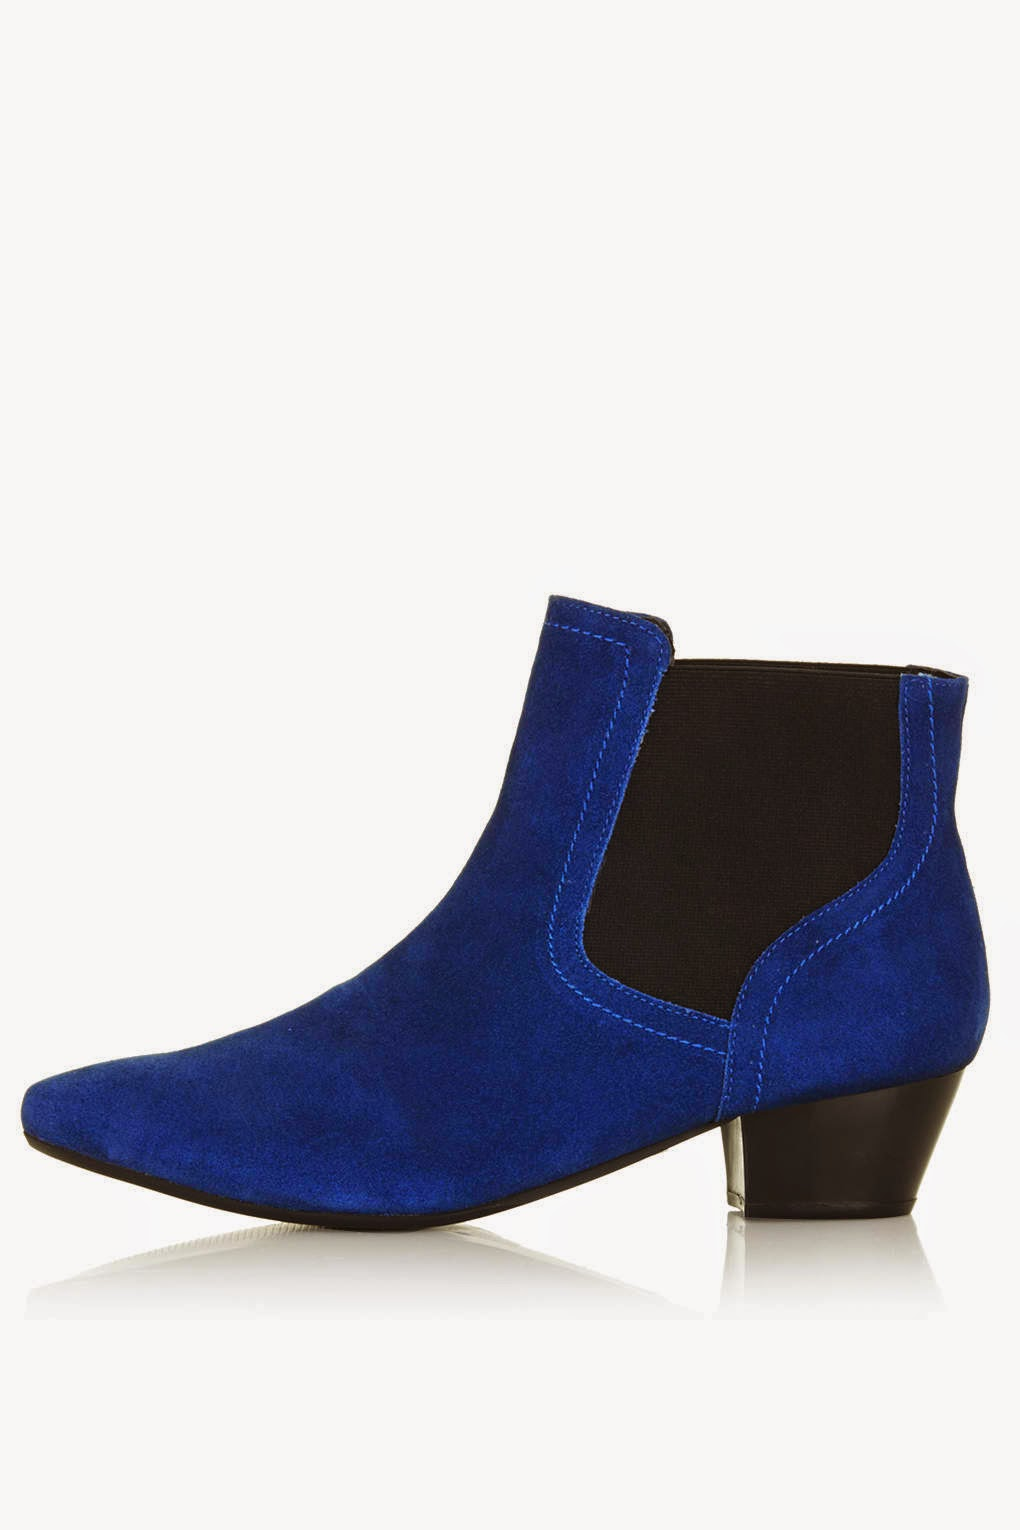 bright blue suede boots